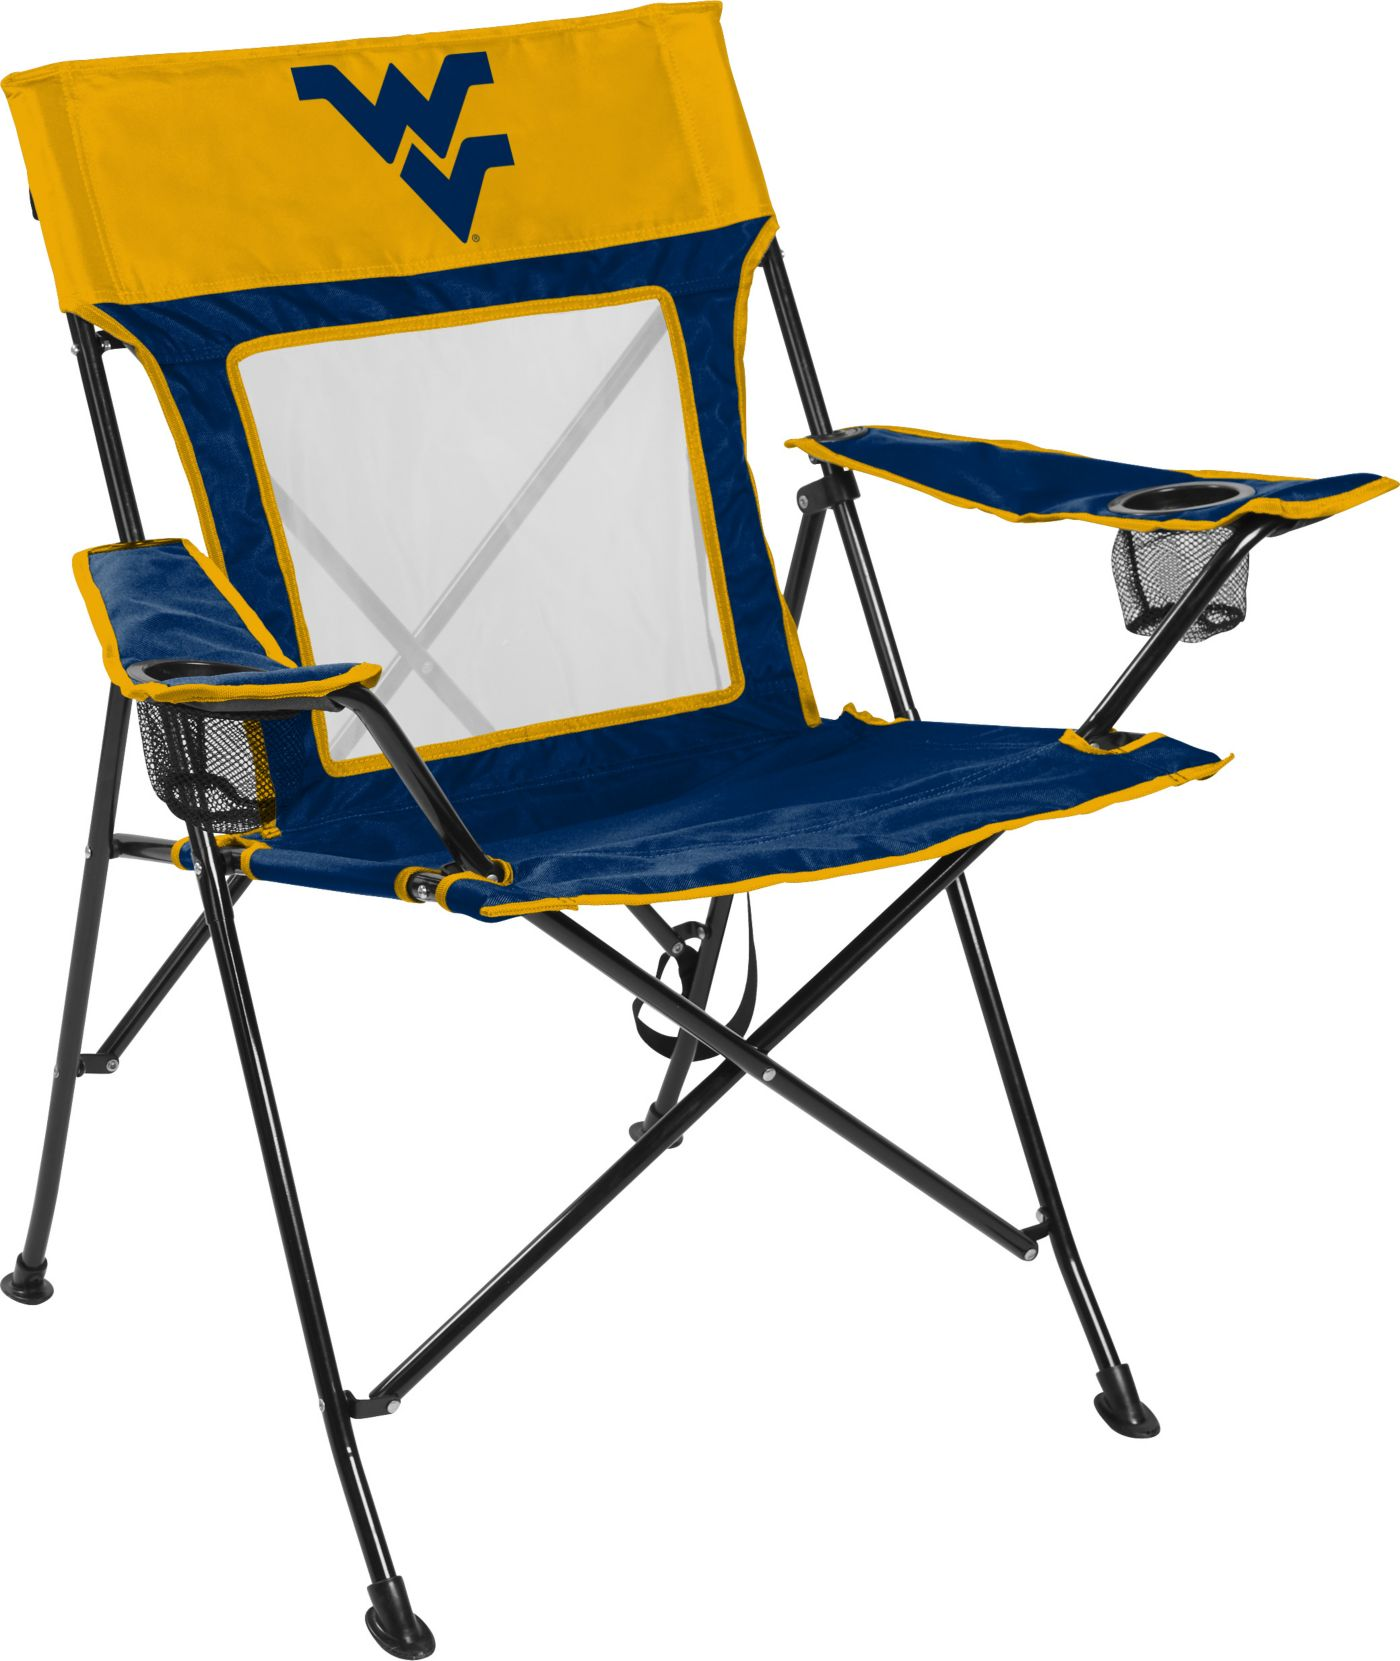 Rawlings West Virginia Mountaineers Game Changer Chair